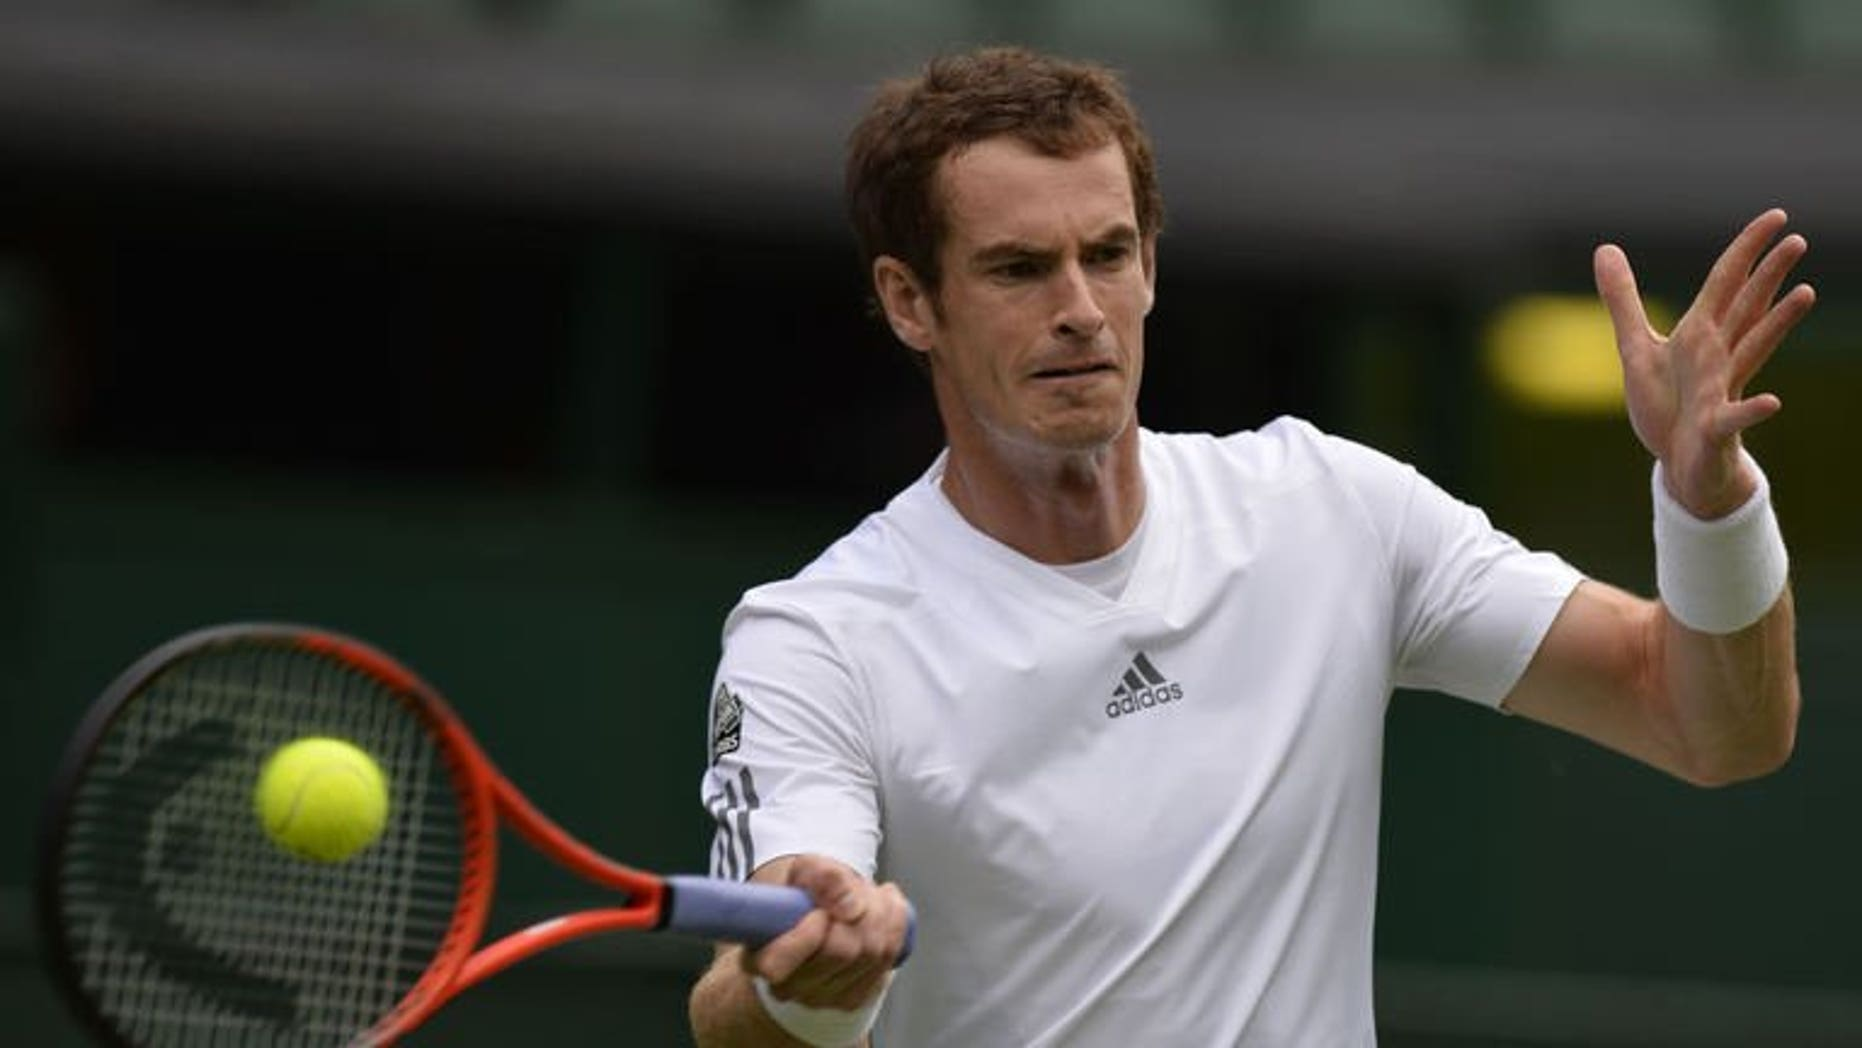 Britain's Andy Murray returns against Germany's Benjamin Becker during their men's first round match on day one of the 2013 Wimbledon Championships tennis tournament at the All England Club in Wimbledon, southwest London, on June 24, 2013. Murray made history as the world number two cruised into the Wimbledon second round with a 6-4, 6-3, 6-2 victory.